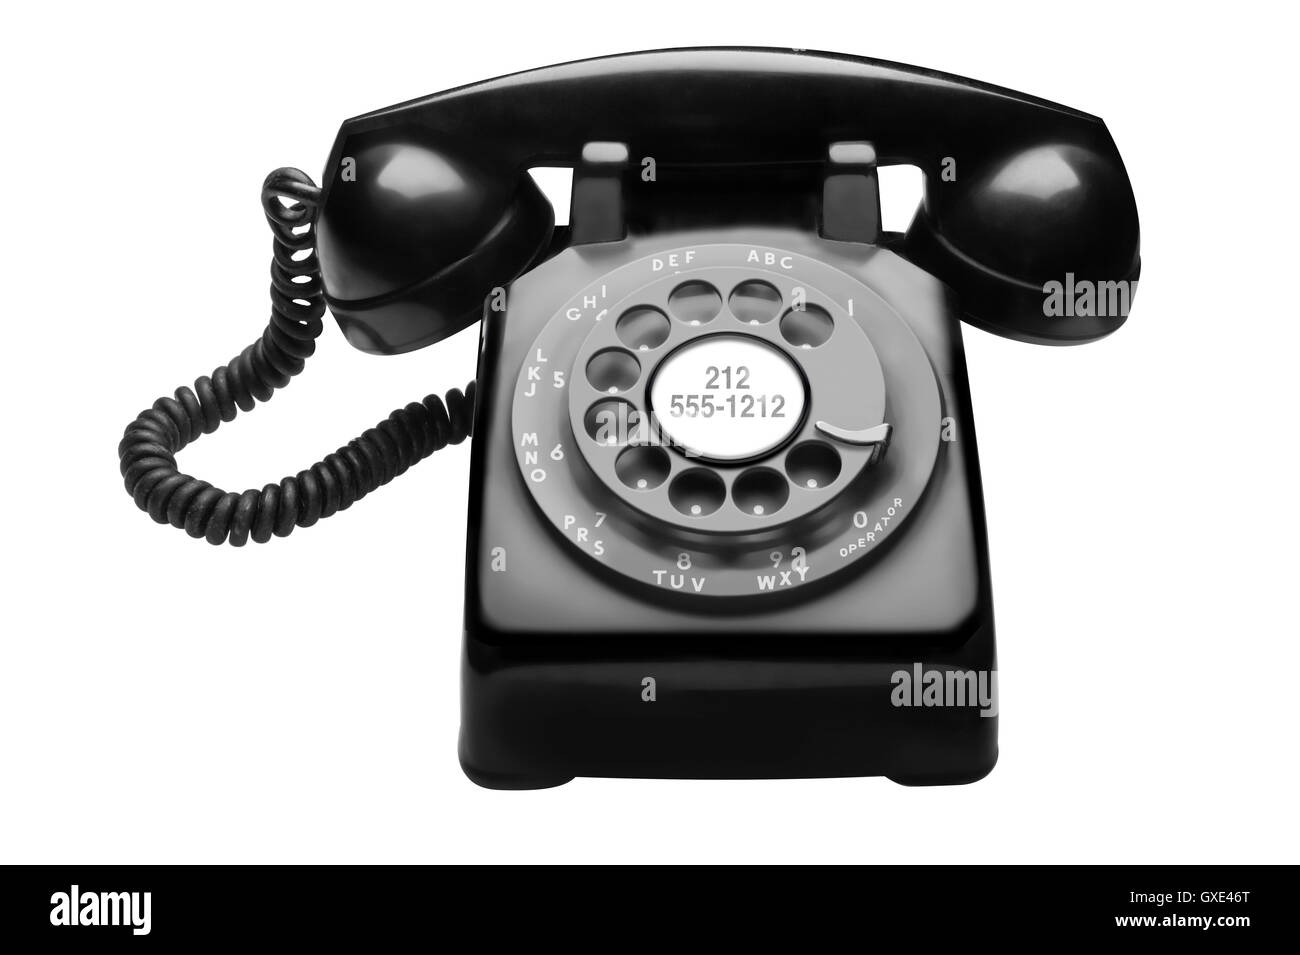 1950's Bell System Western Electric Rotary Telephone - Stock Image